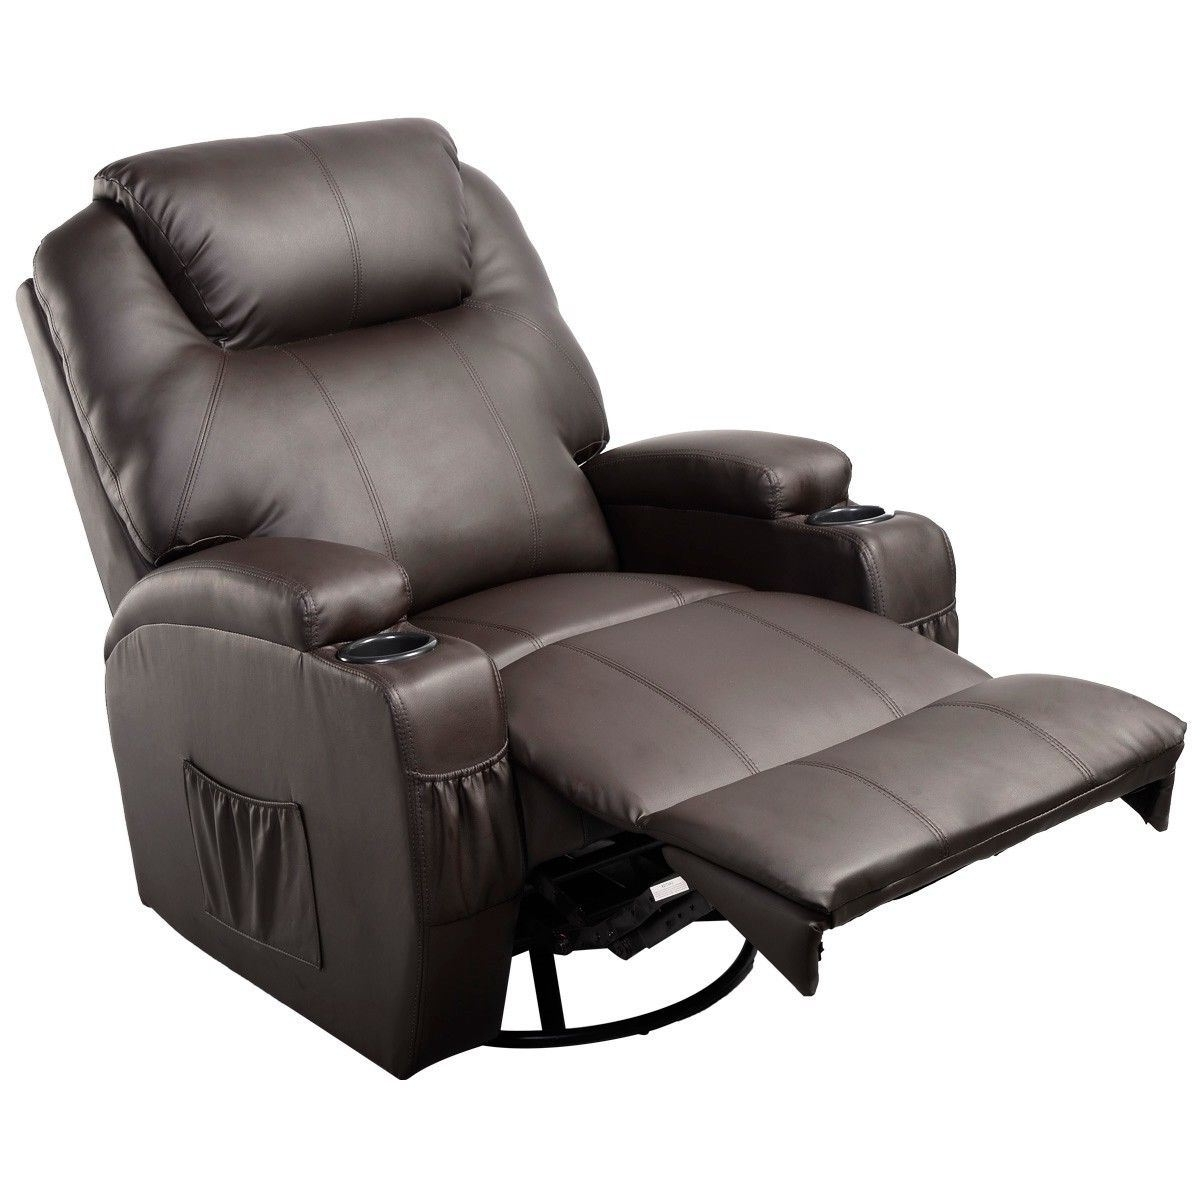 Ergonomic Heated Massage Recliner Sofa Chair (Gallery 4 of 20)